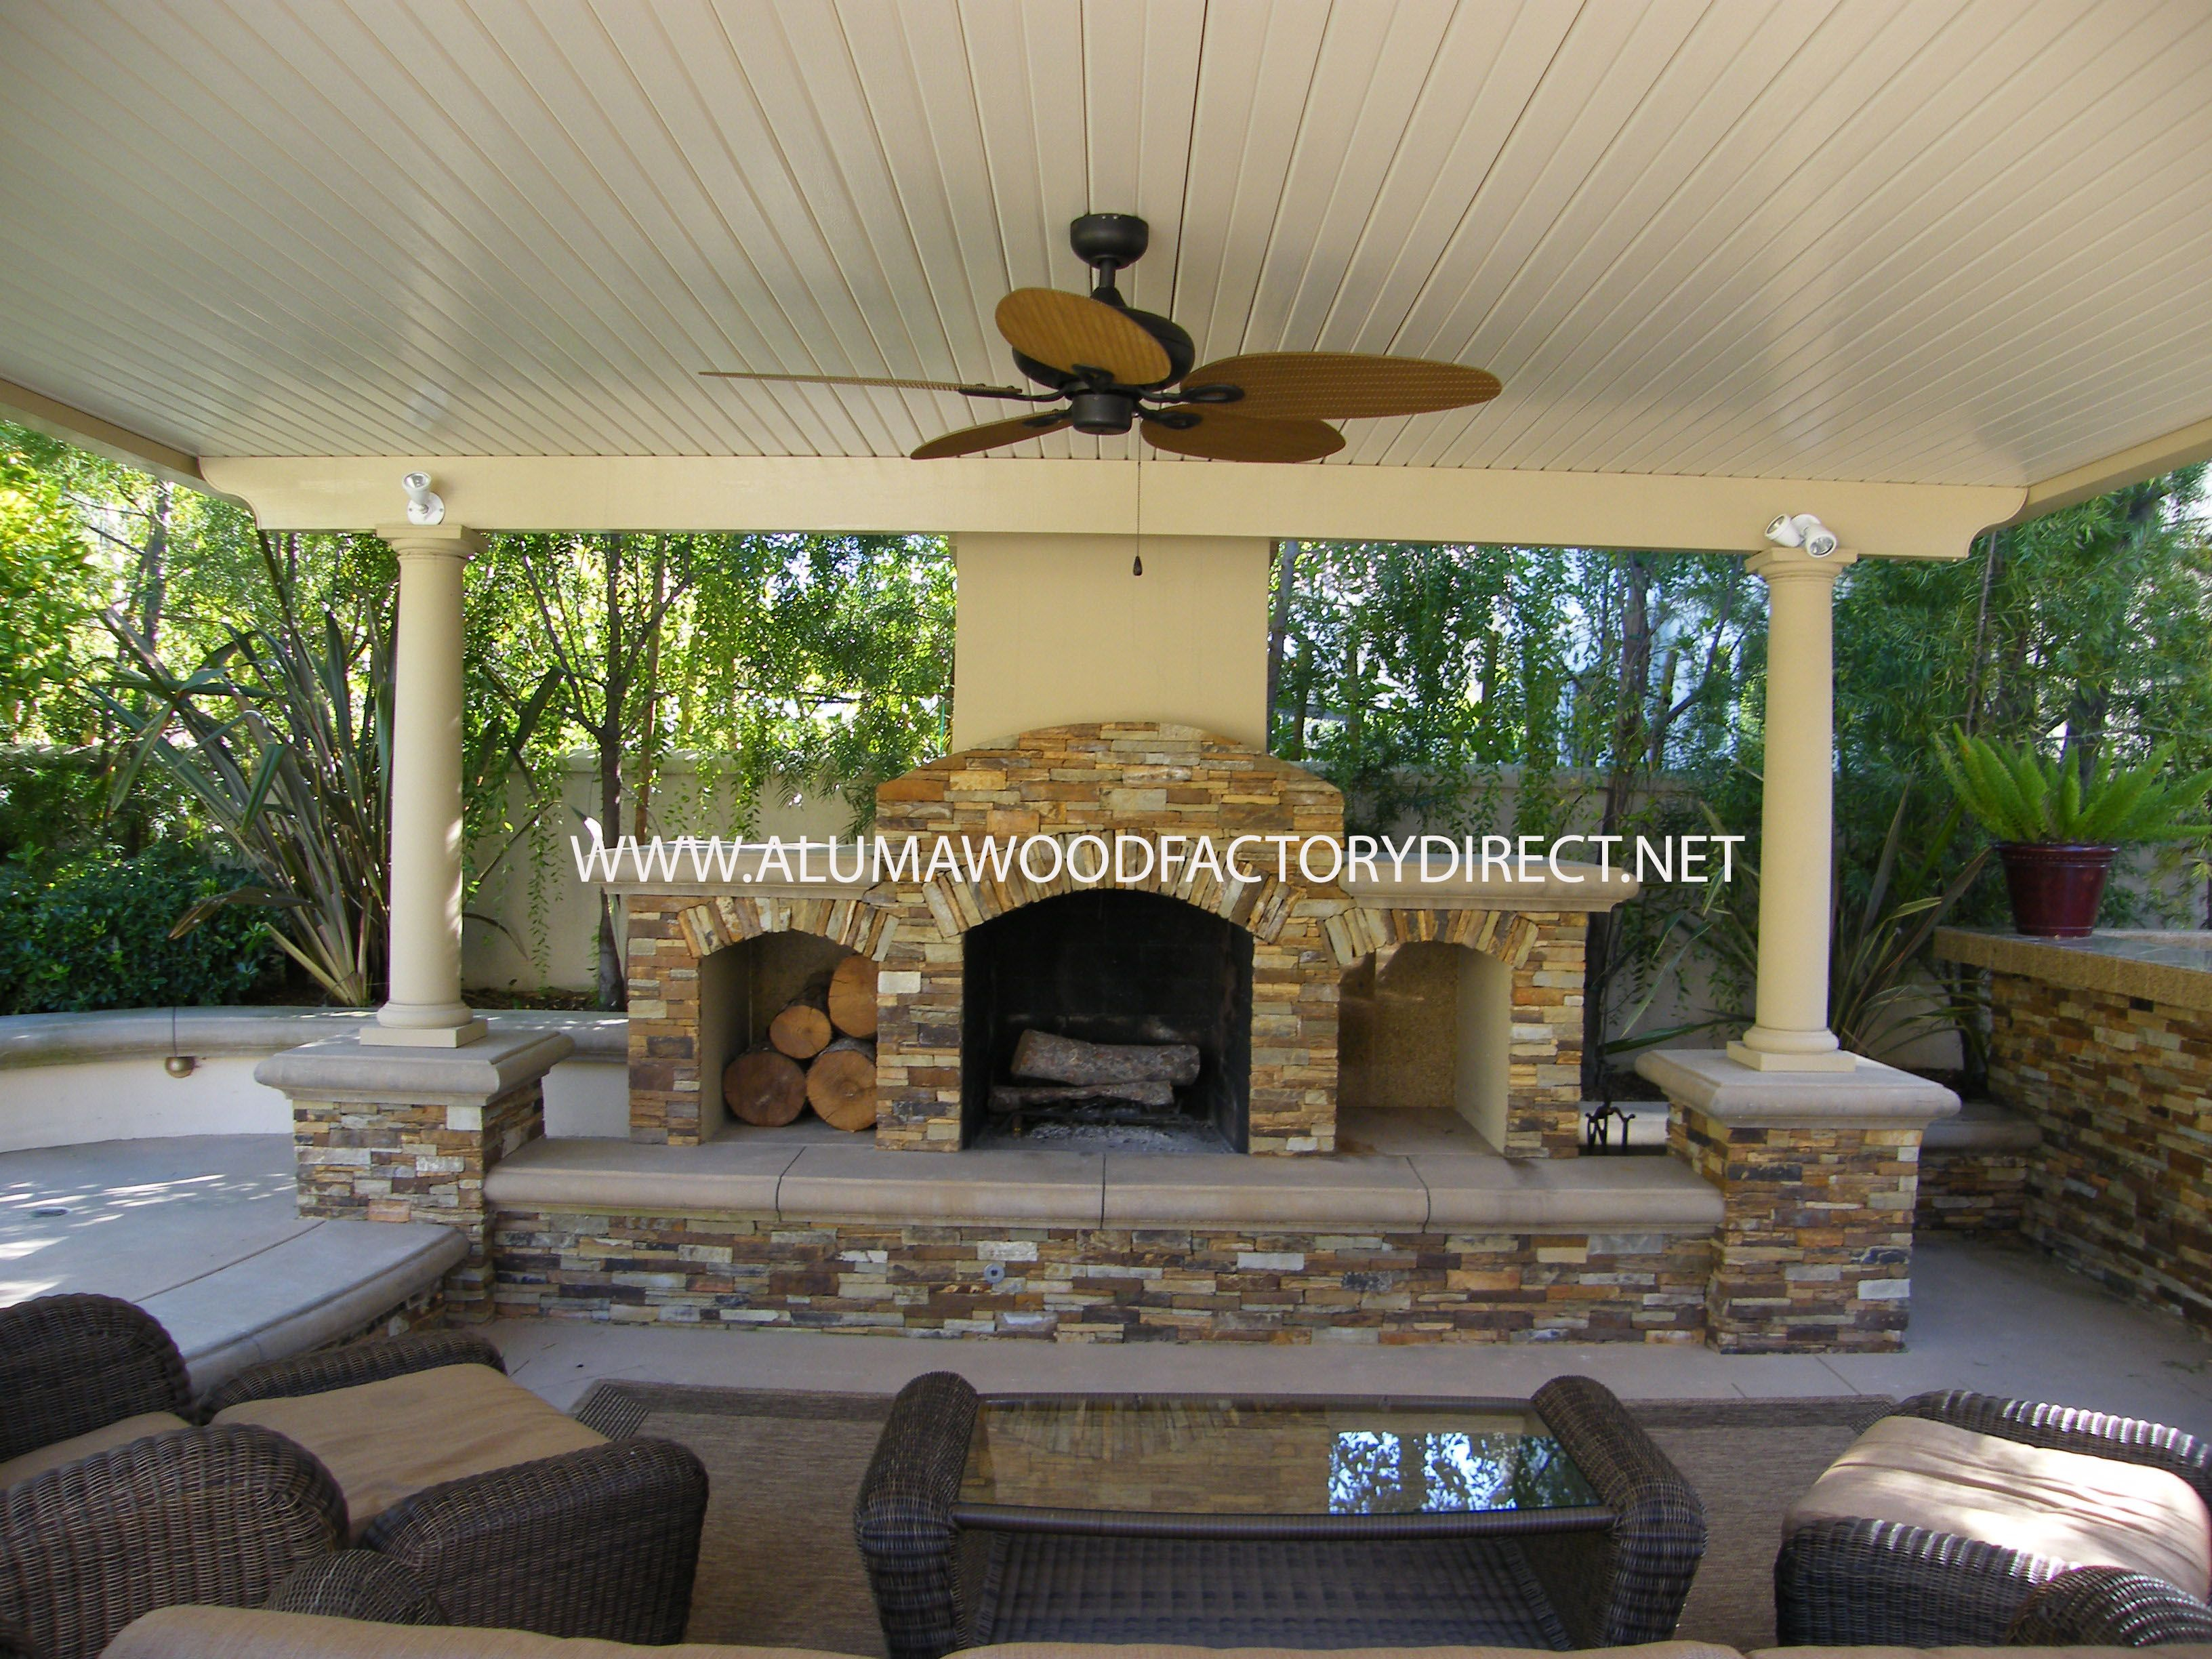 example for patio cover cost: 10′ x 20′ attached patio cover